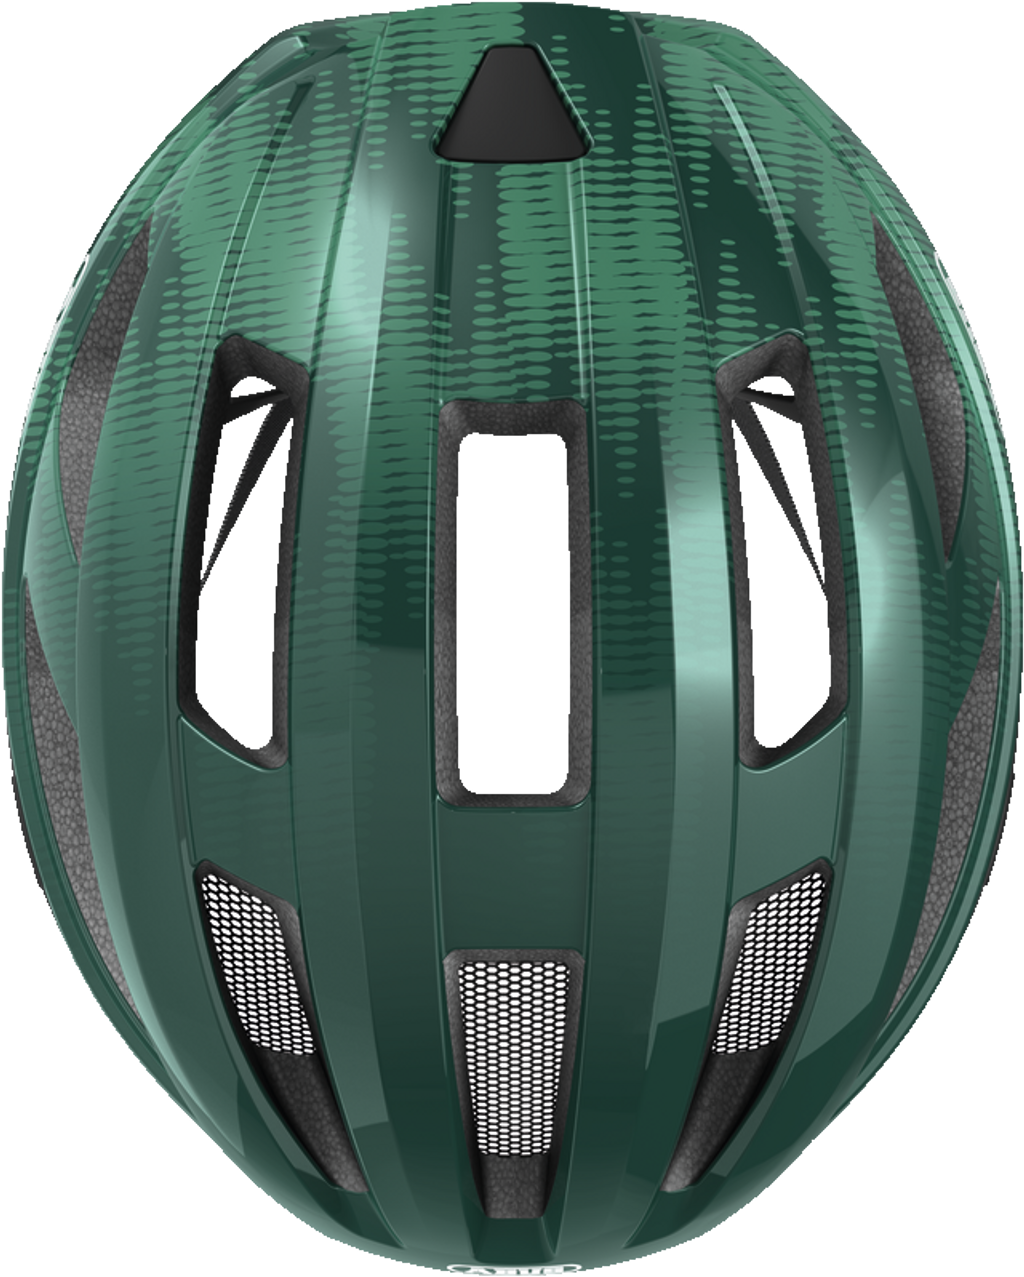 87240_Macator_opal_green_top_abus_640.png